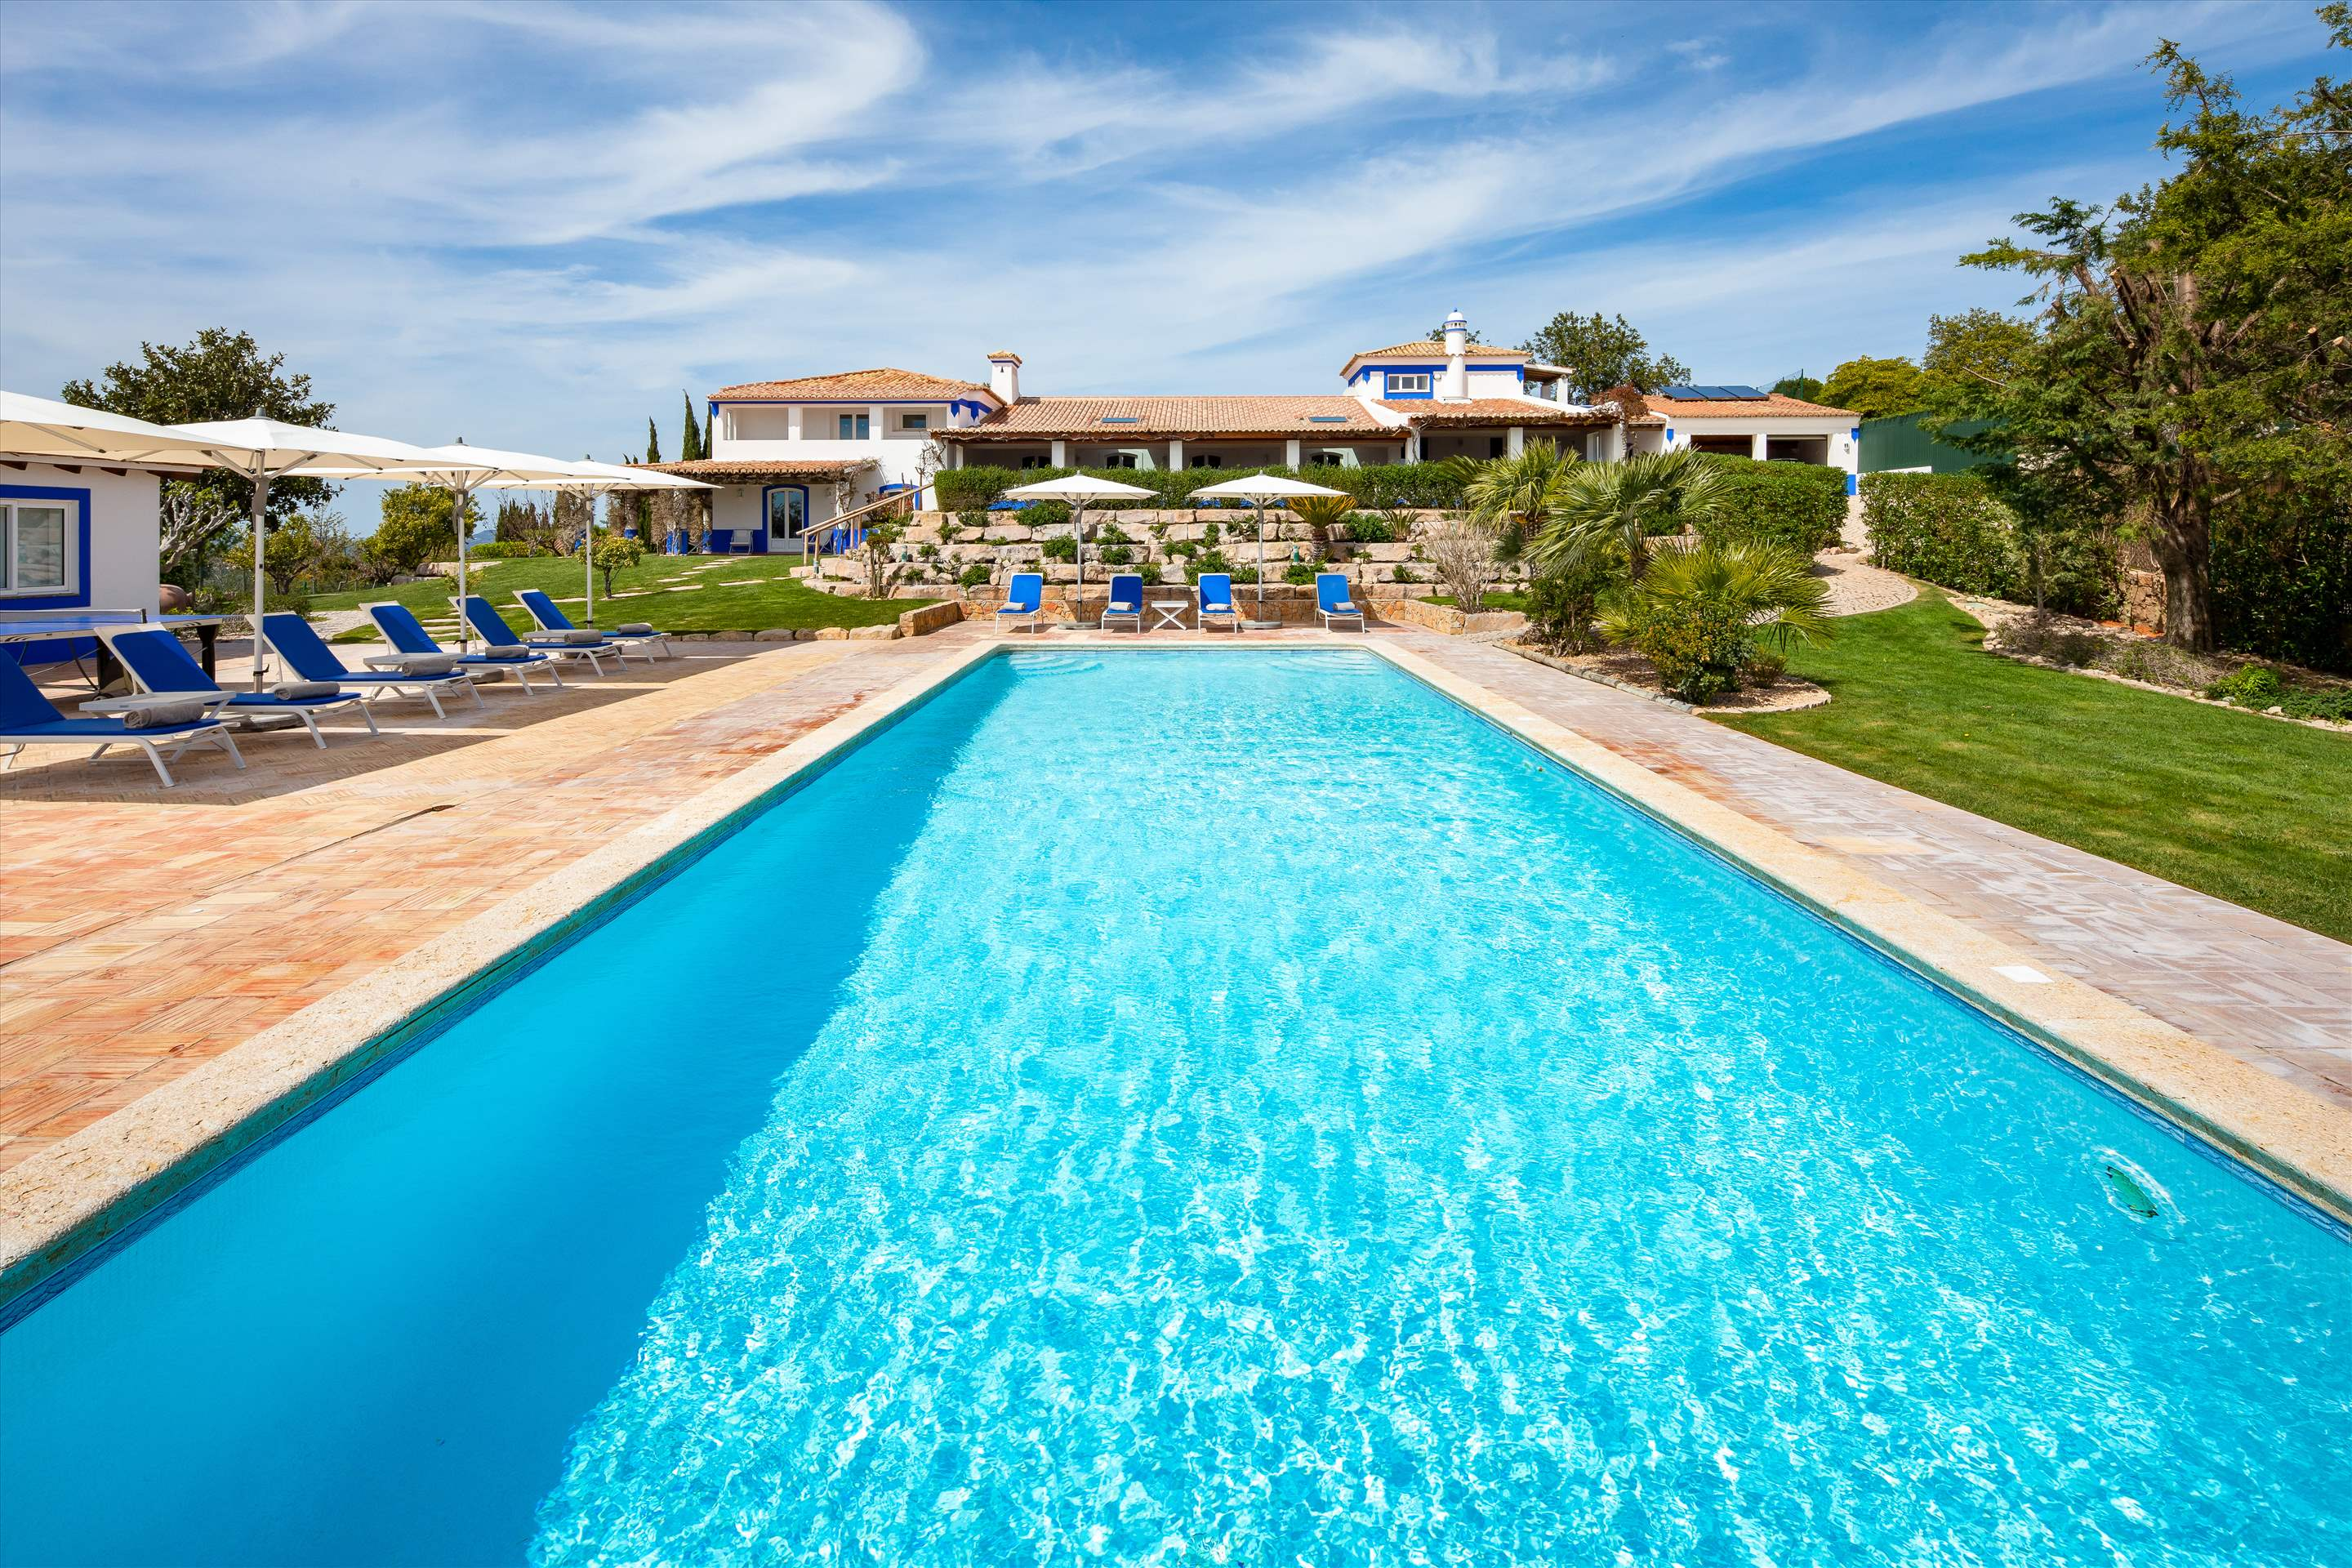 Casa da Montanha, 13-14 persons, 8 bedroom villa in Vilamoura Area, Algarve Photo #1